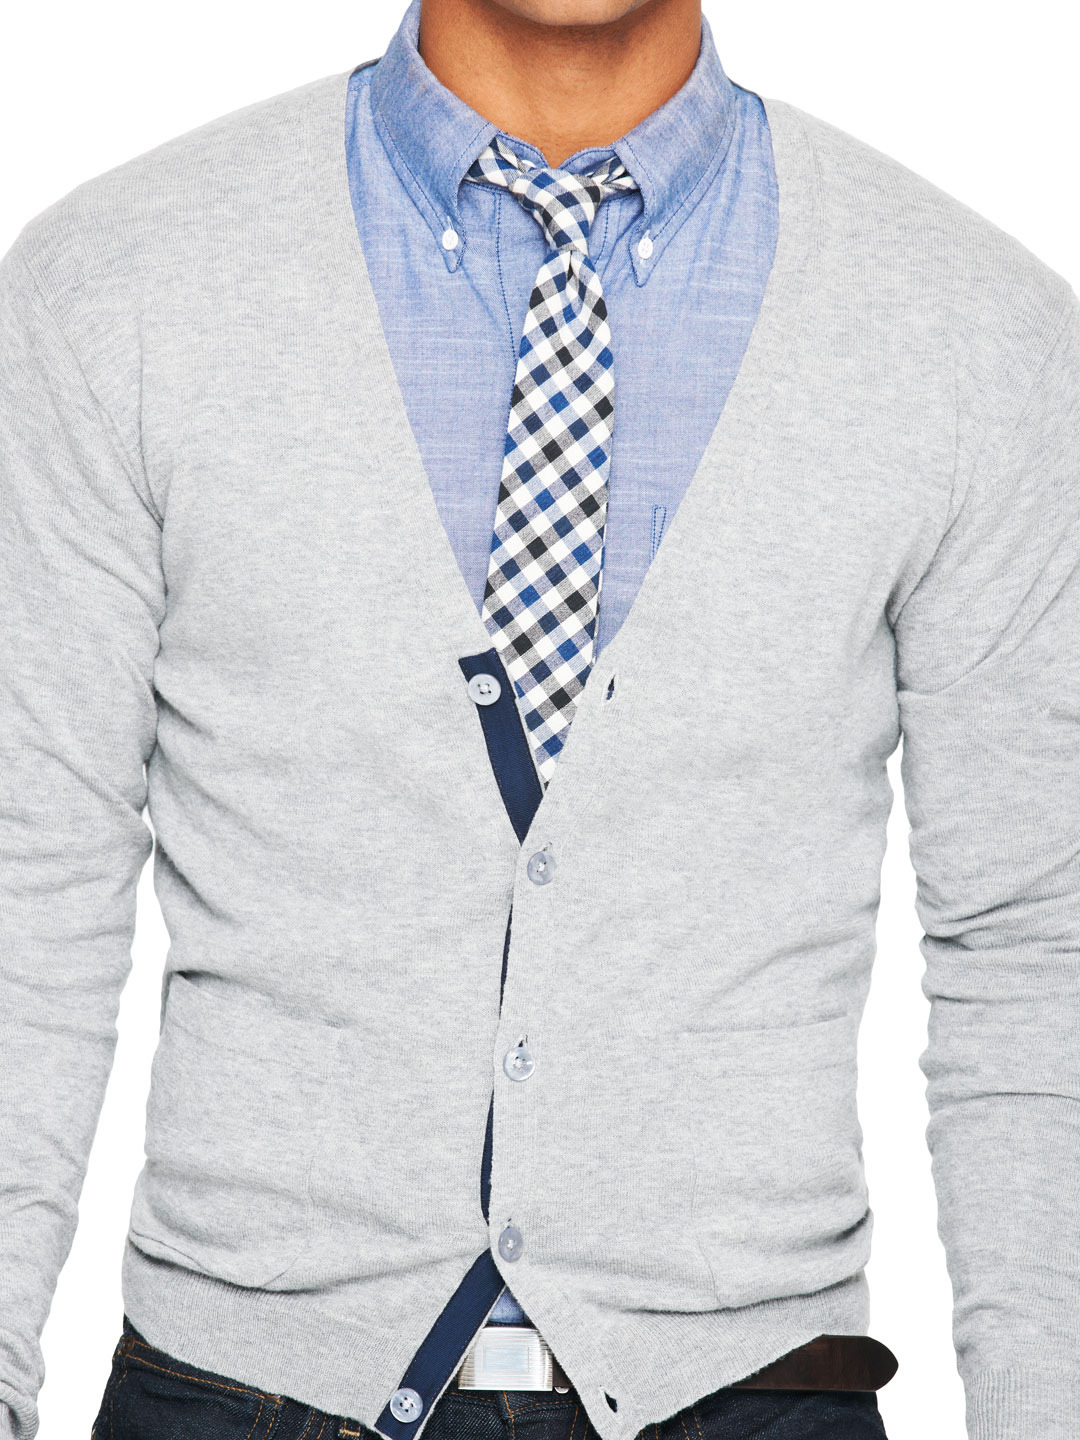 Business Casual Outfits On Pinterest: Business Attire : Business Casual For Men